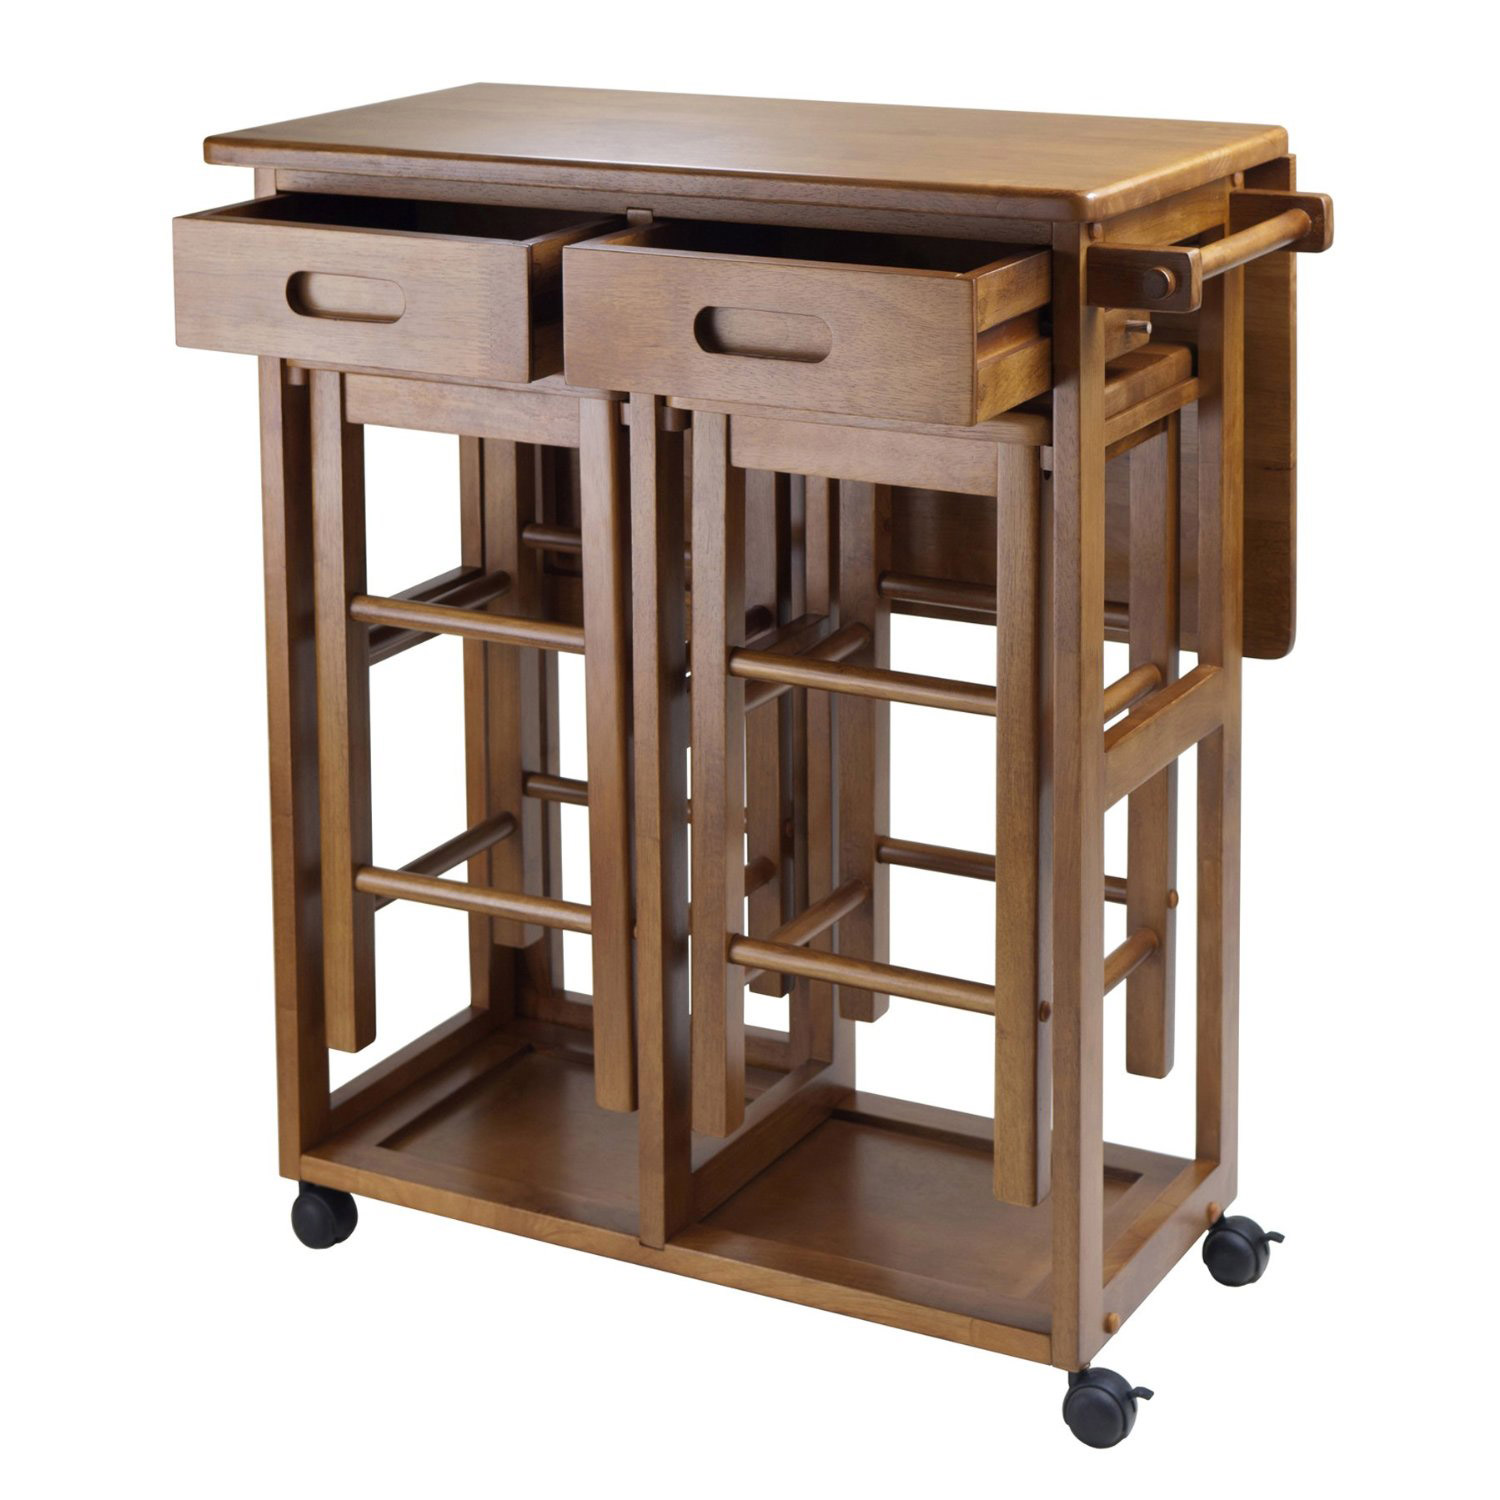 small kitchen table set latest trends in flooring choose a folding dining for space adorable home with drawers